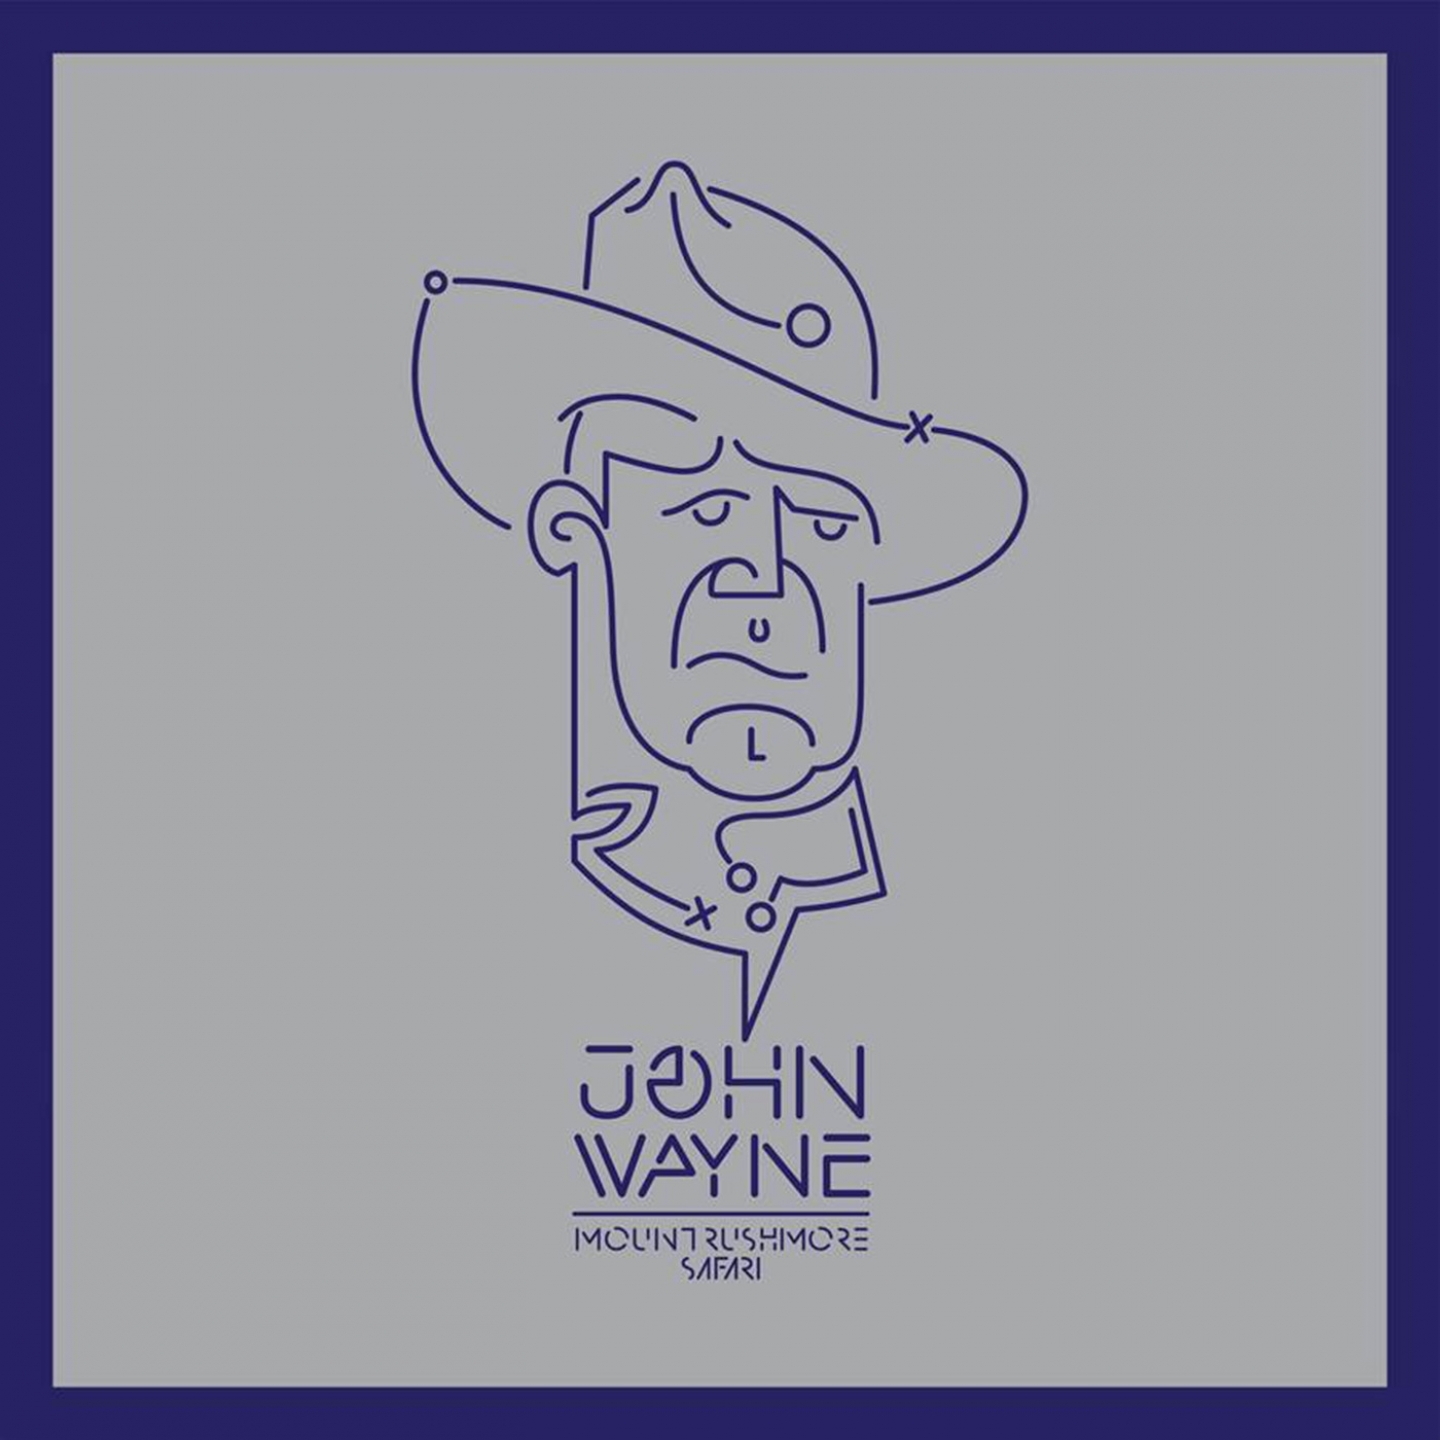 Mount Rushmore Safari – 'John Wayne' (Single)